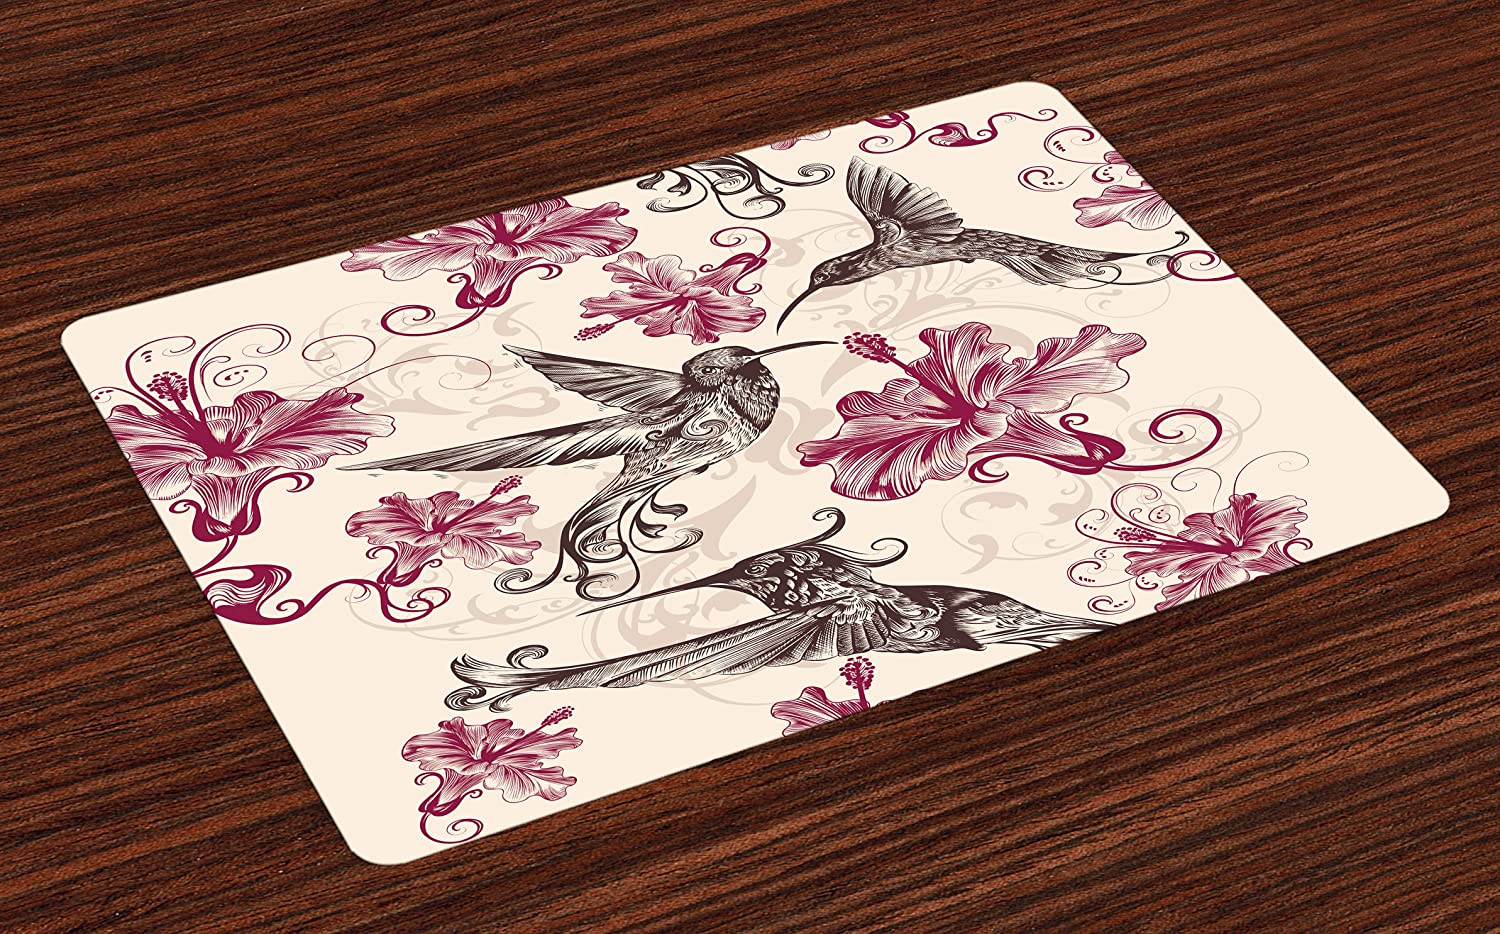 Lunarable Hummingbirds Place Mats Set of 4, Birds and Flowers Swirl Flourish Antique Old Ornament Pattern, Washable Fabric Placemats for Dining Room Kitchen Table Decor, Cream Maroon Black